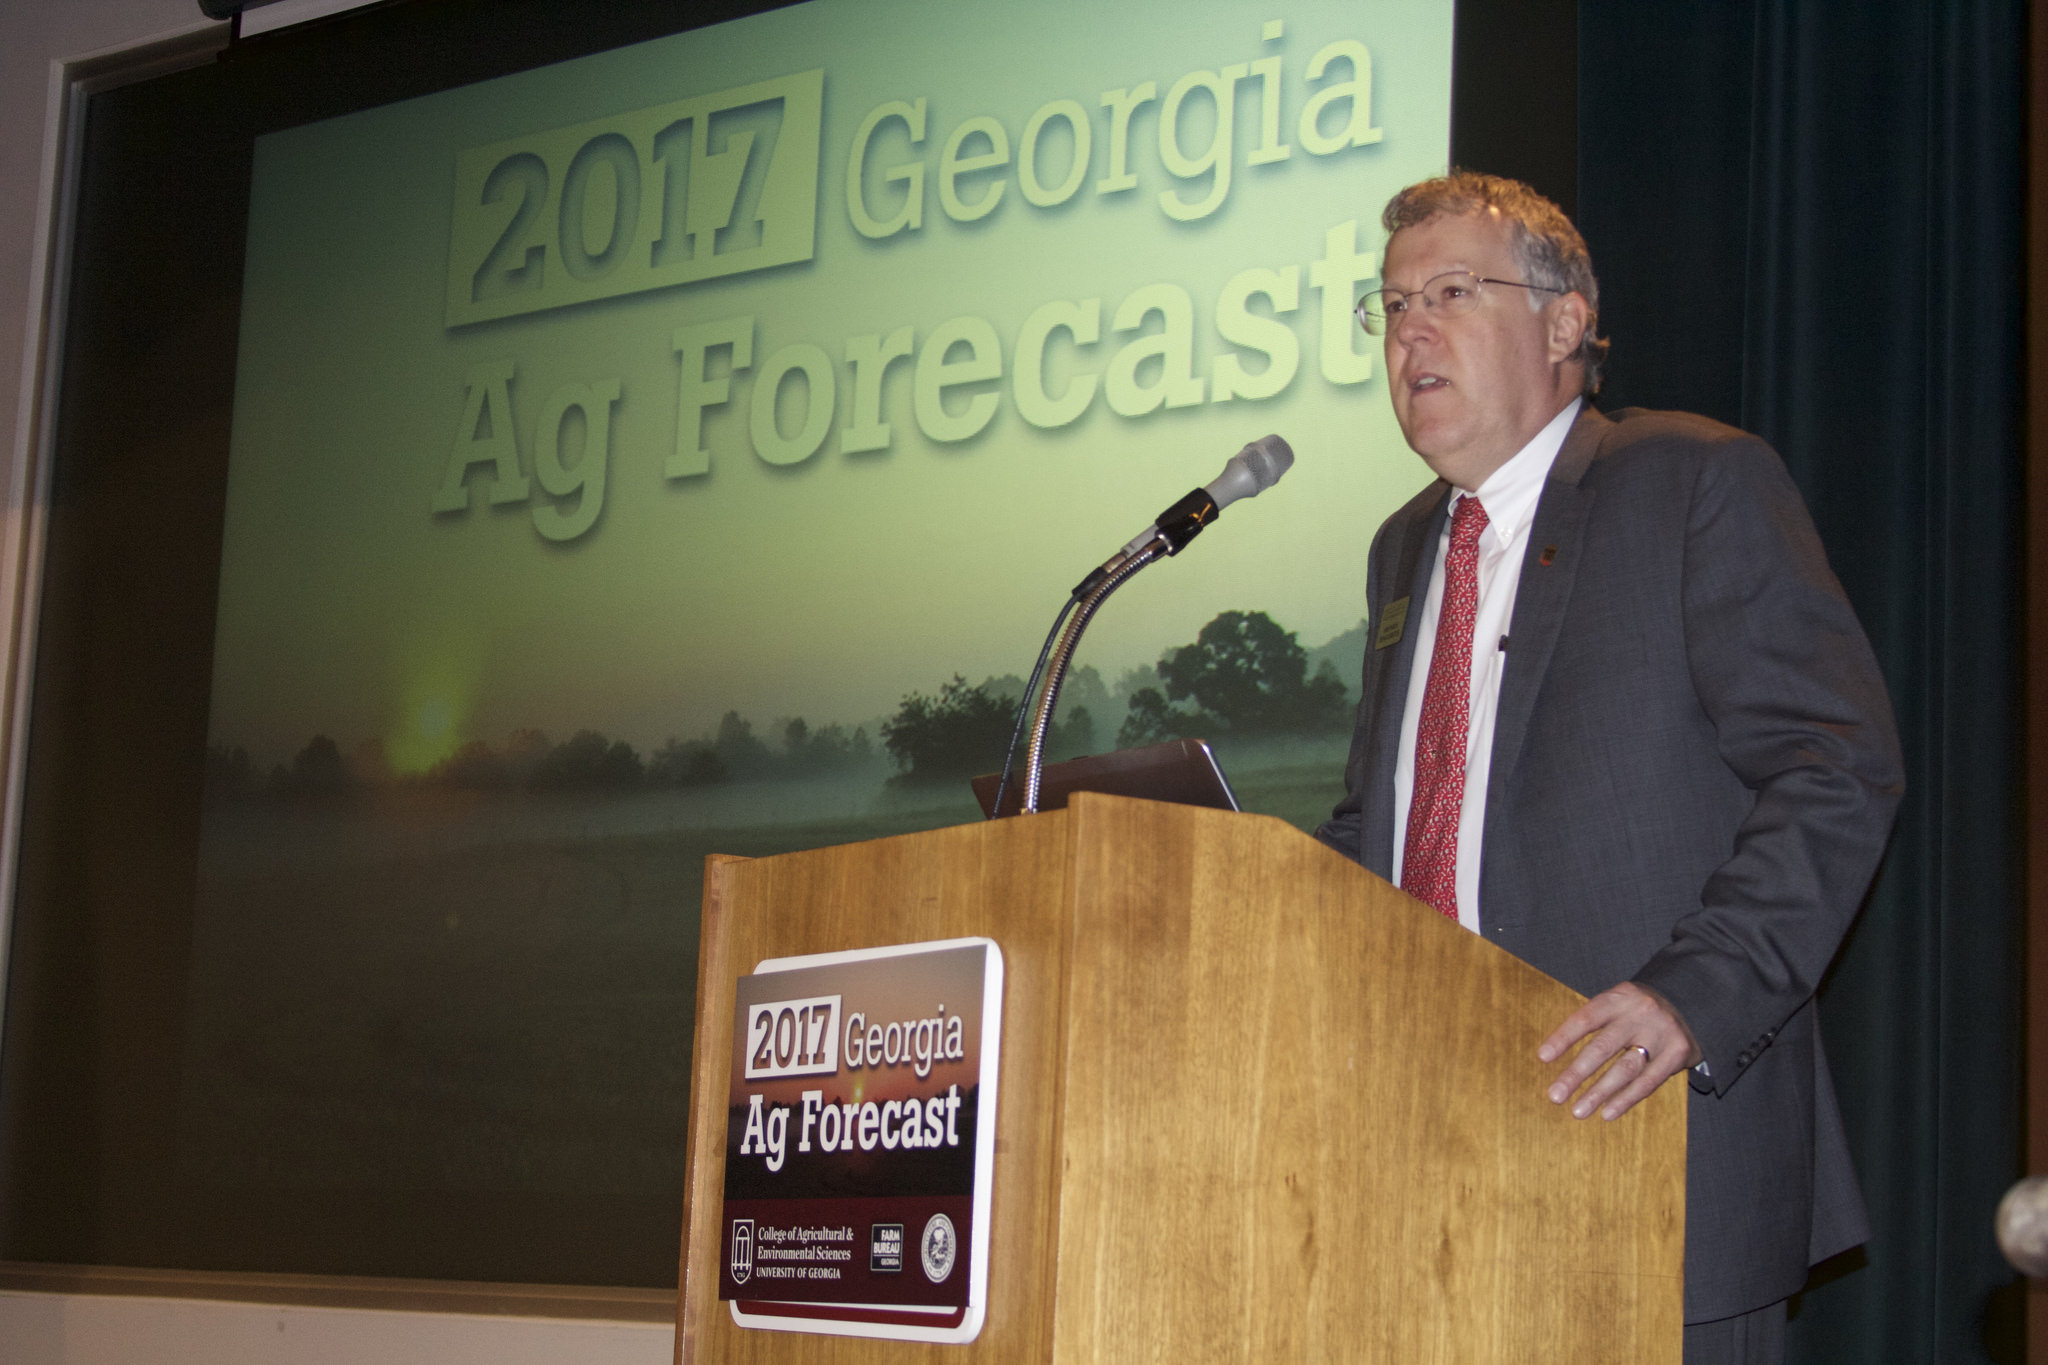 Sam Pardue welcomes guests at the Georgia Ag Forecast in Macon, Georgia, on Wednesday, Jan. 18. Pardue is dean and director of the University of Georgia College of Agricultural and Environmental Sciences.